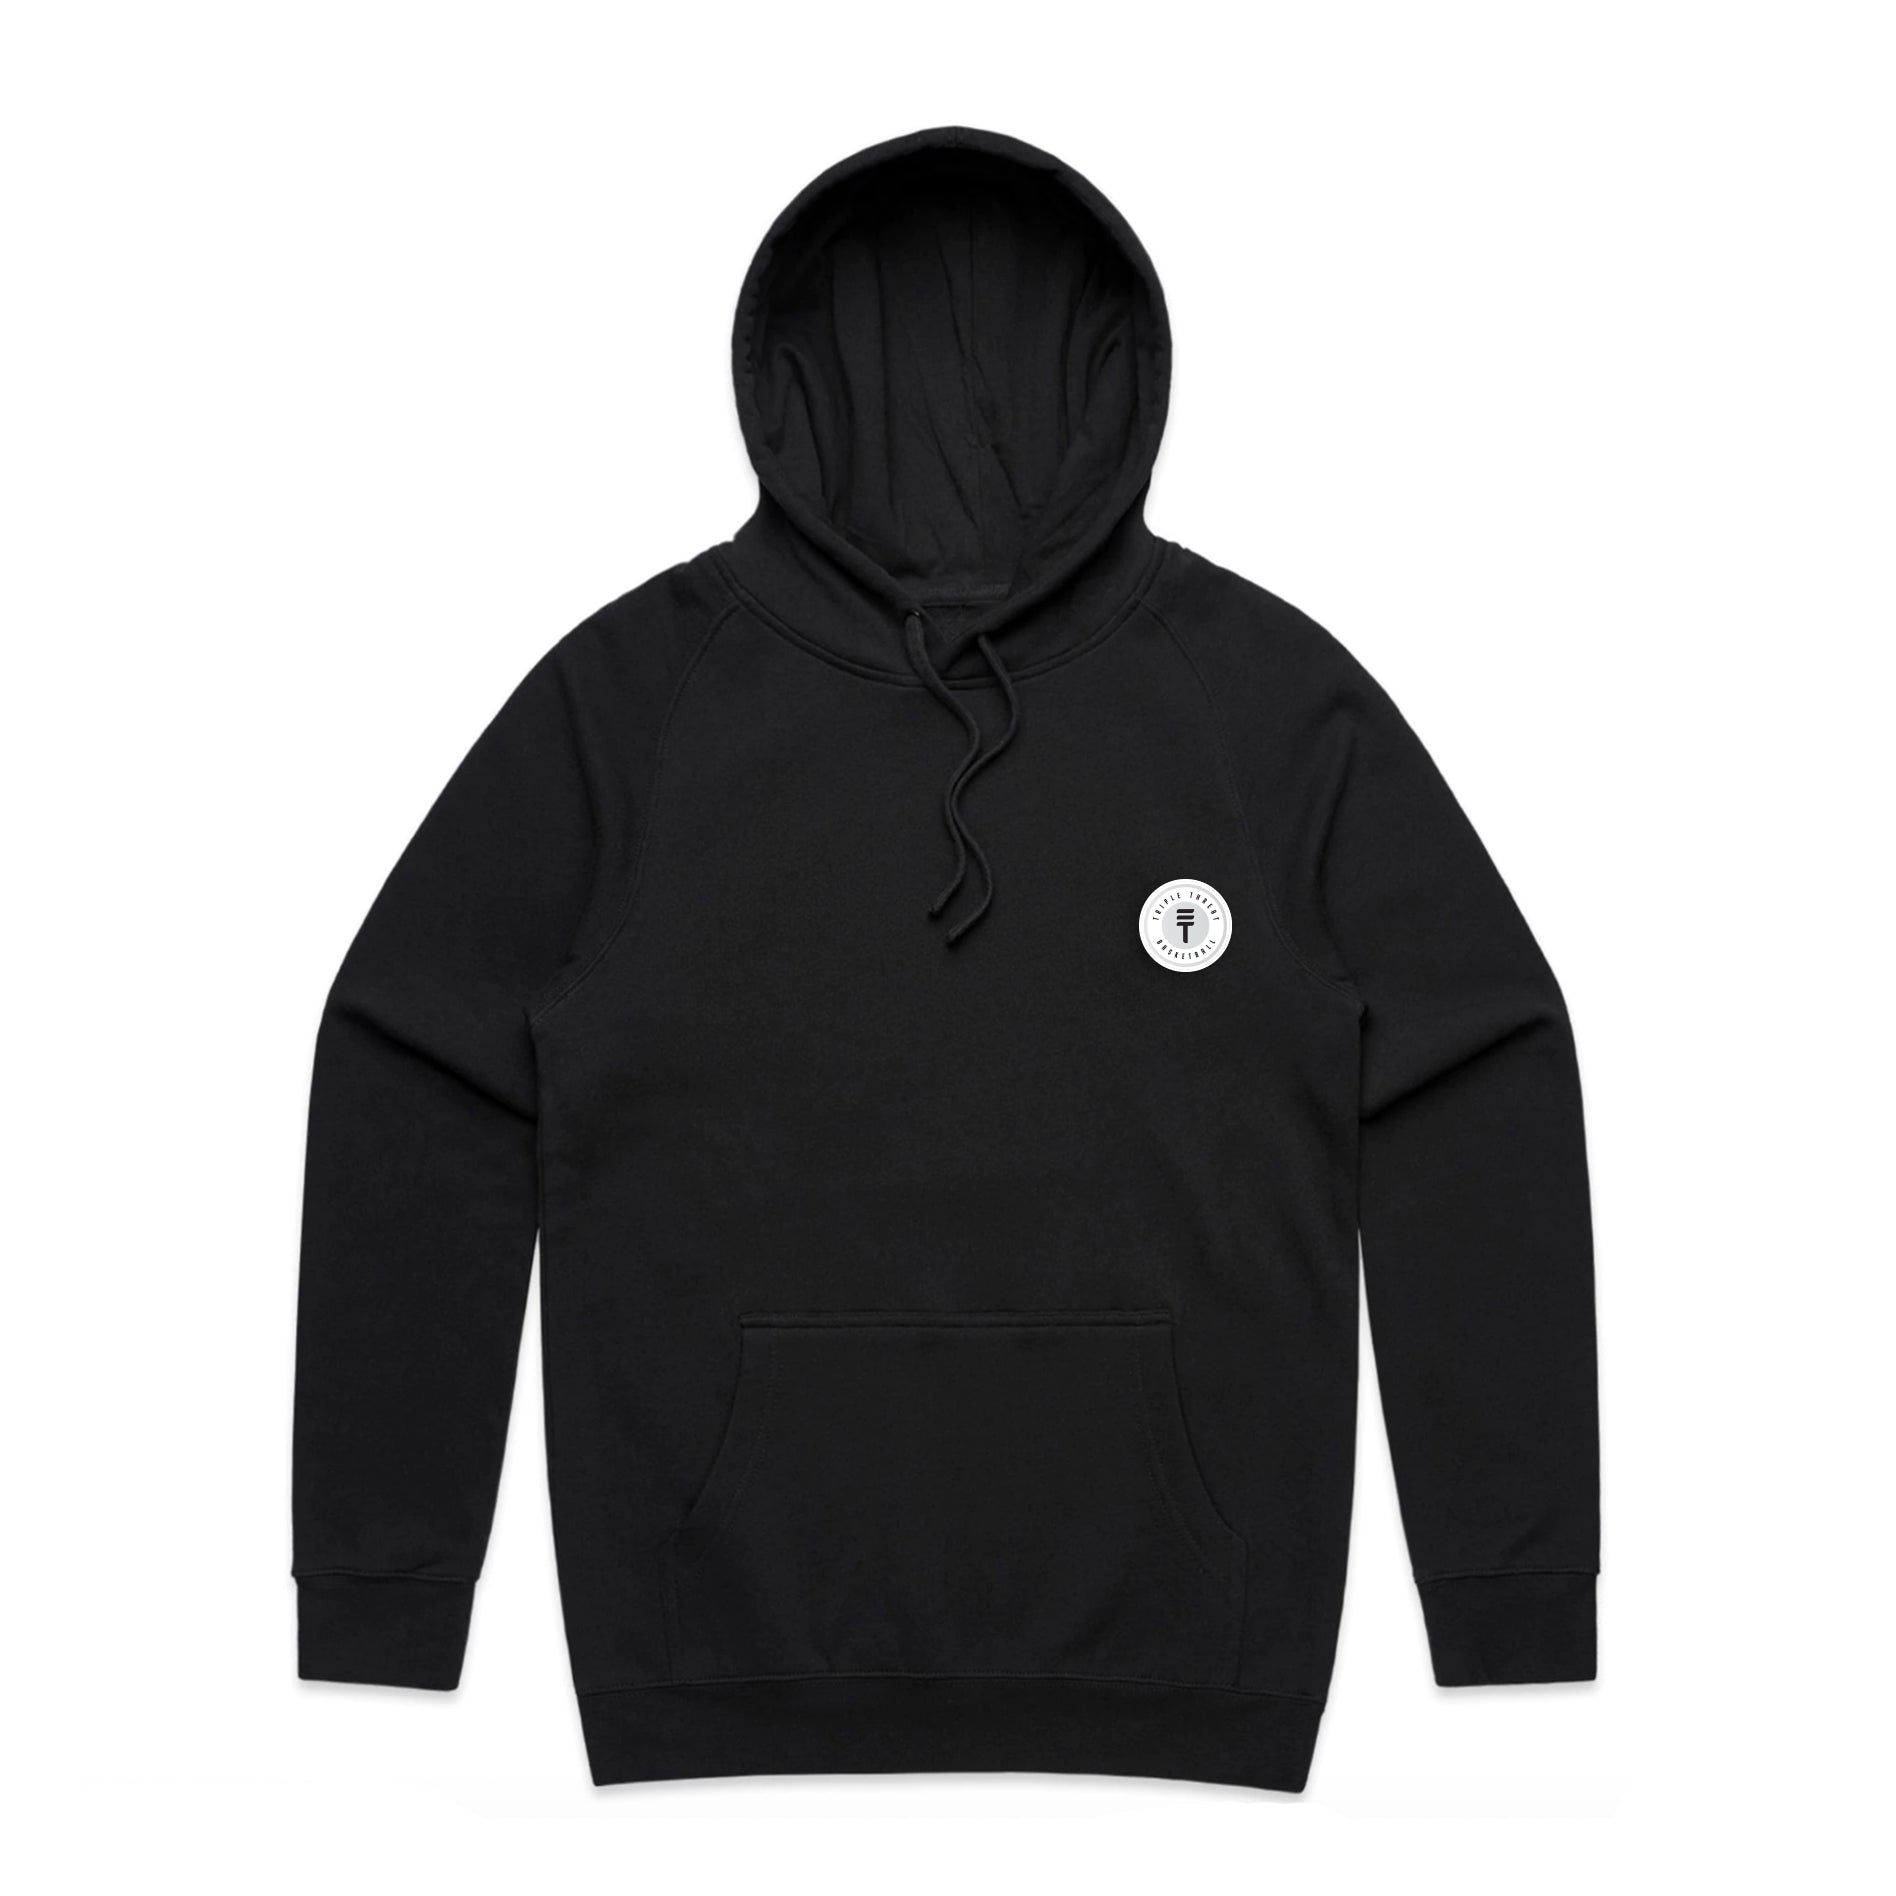 FUNDAMENTAL BADGE MID WEIGHT HOODIE - BLACK